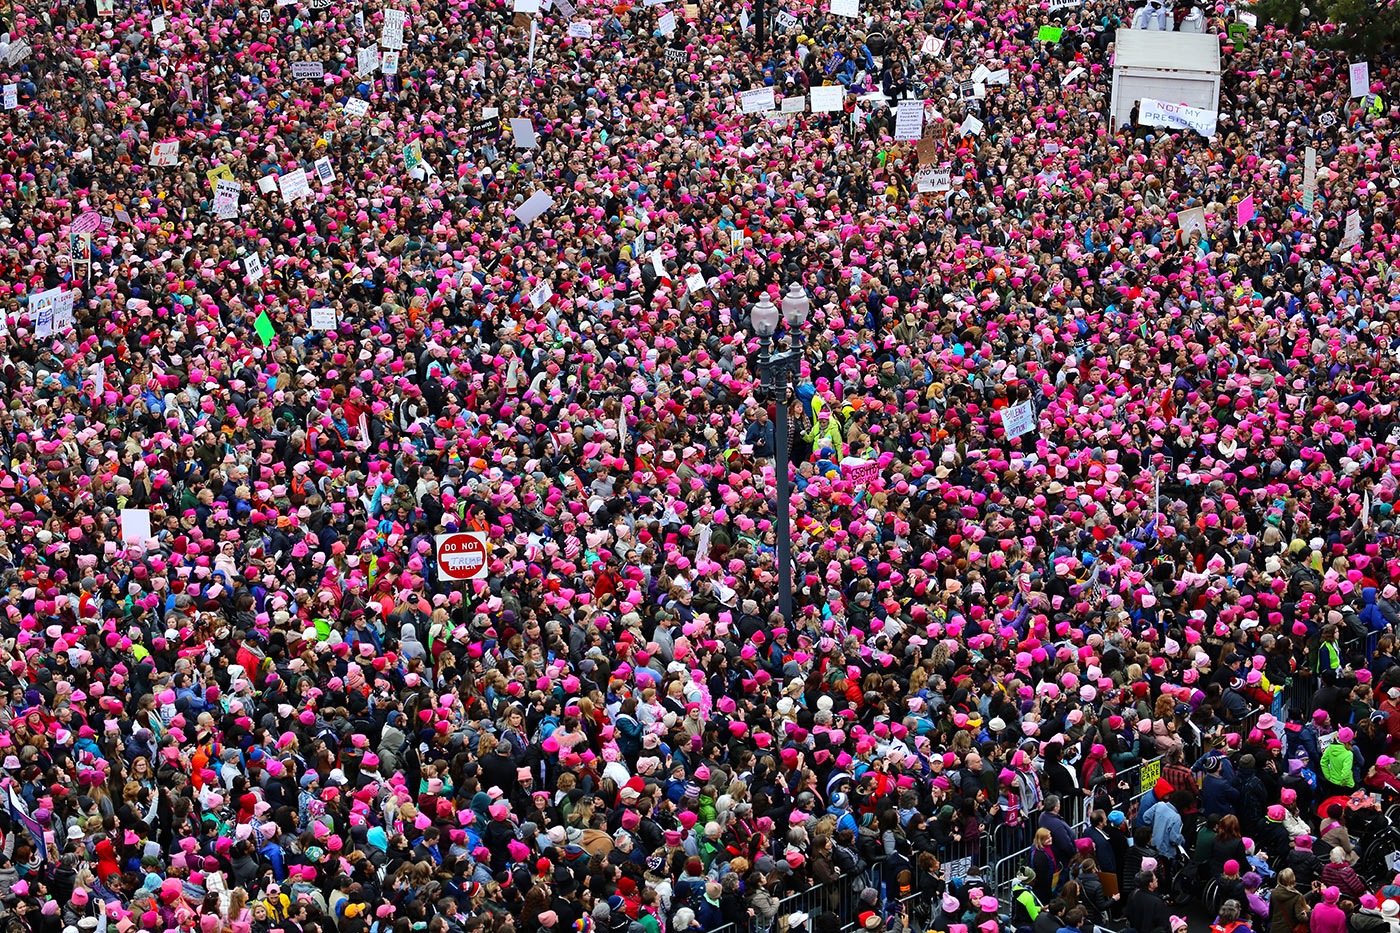 The Pink Pussyhat wins the first Annual Brand of the Year